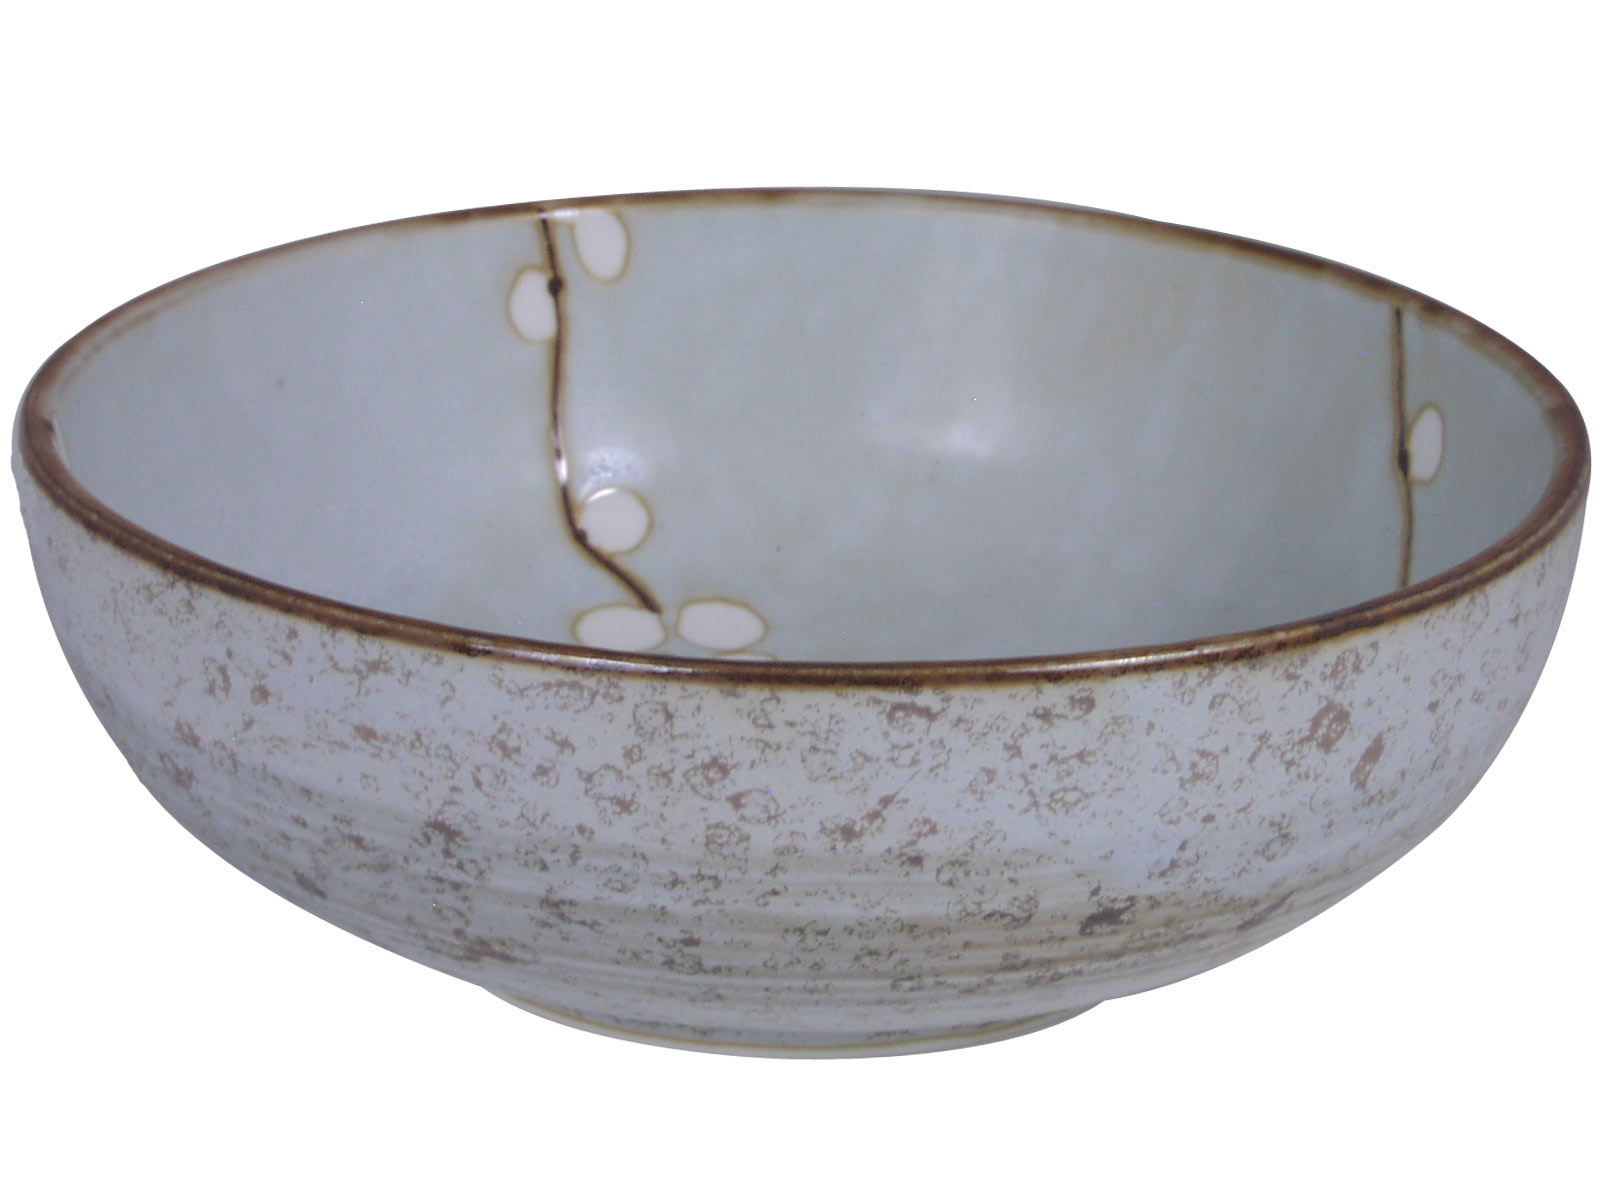 6 Inch Cherry Blossom Japanese Ceramic Bowl